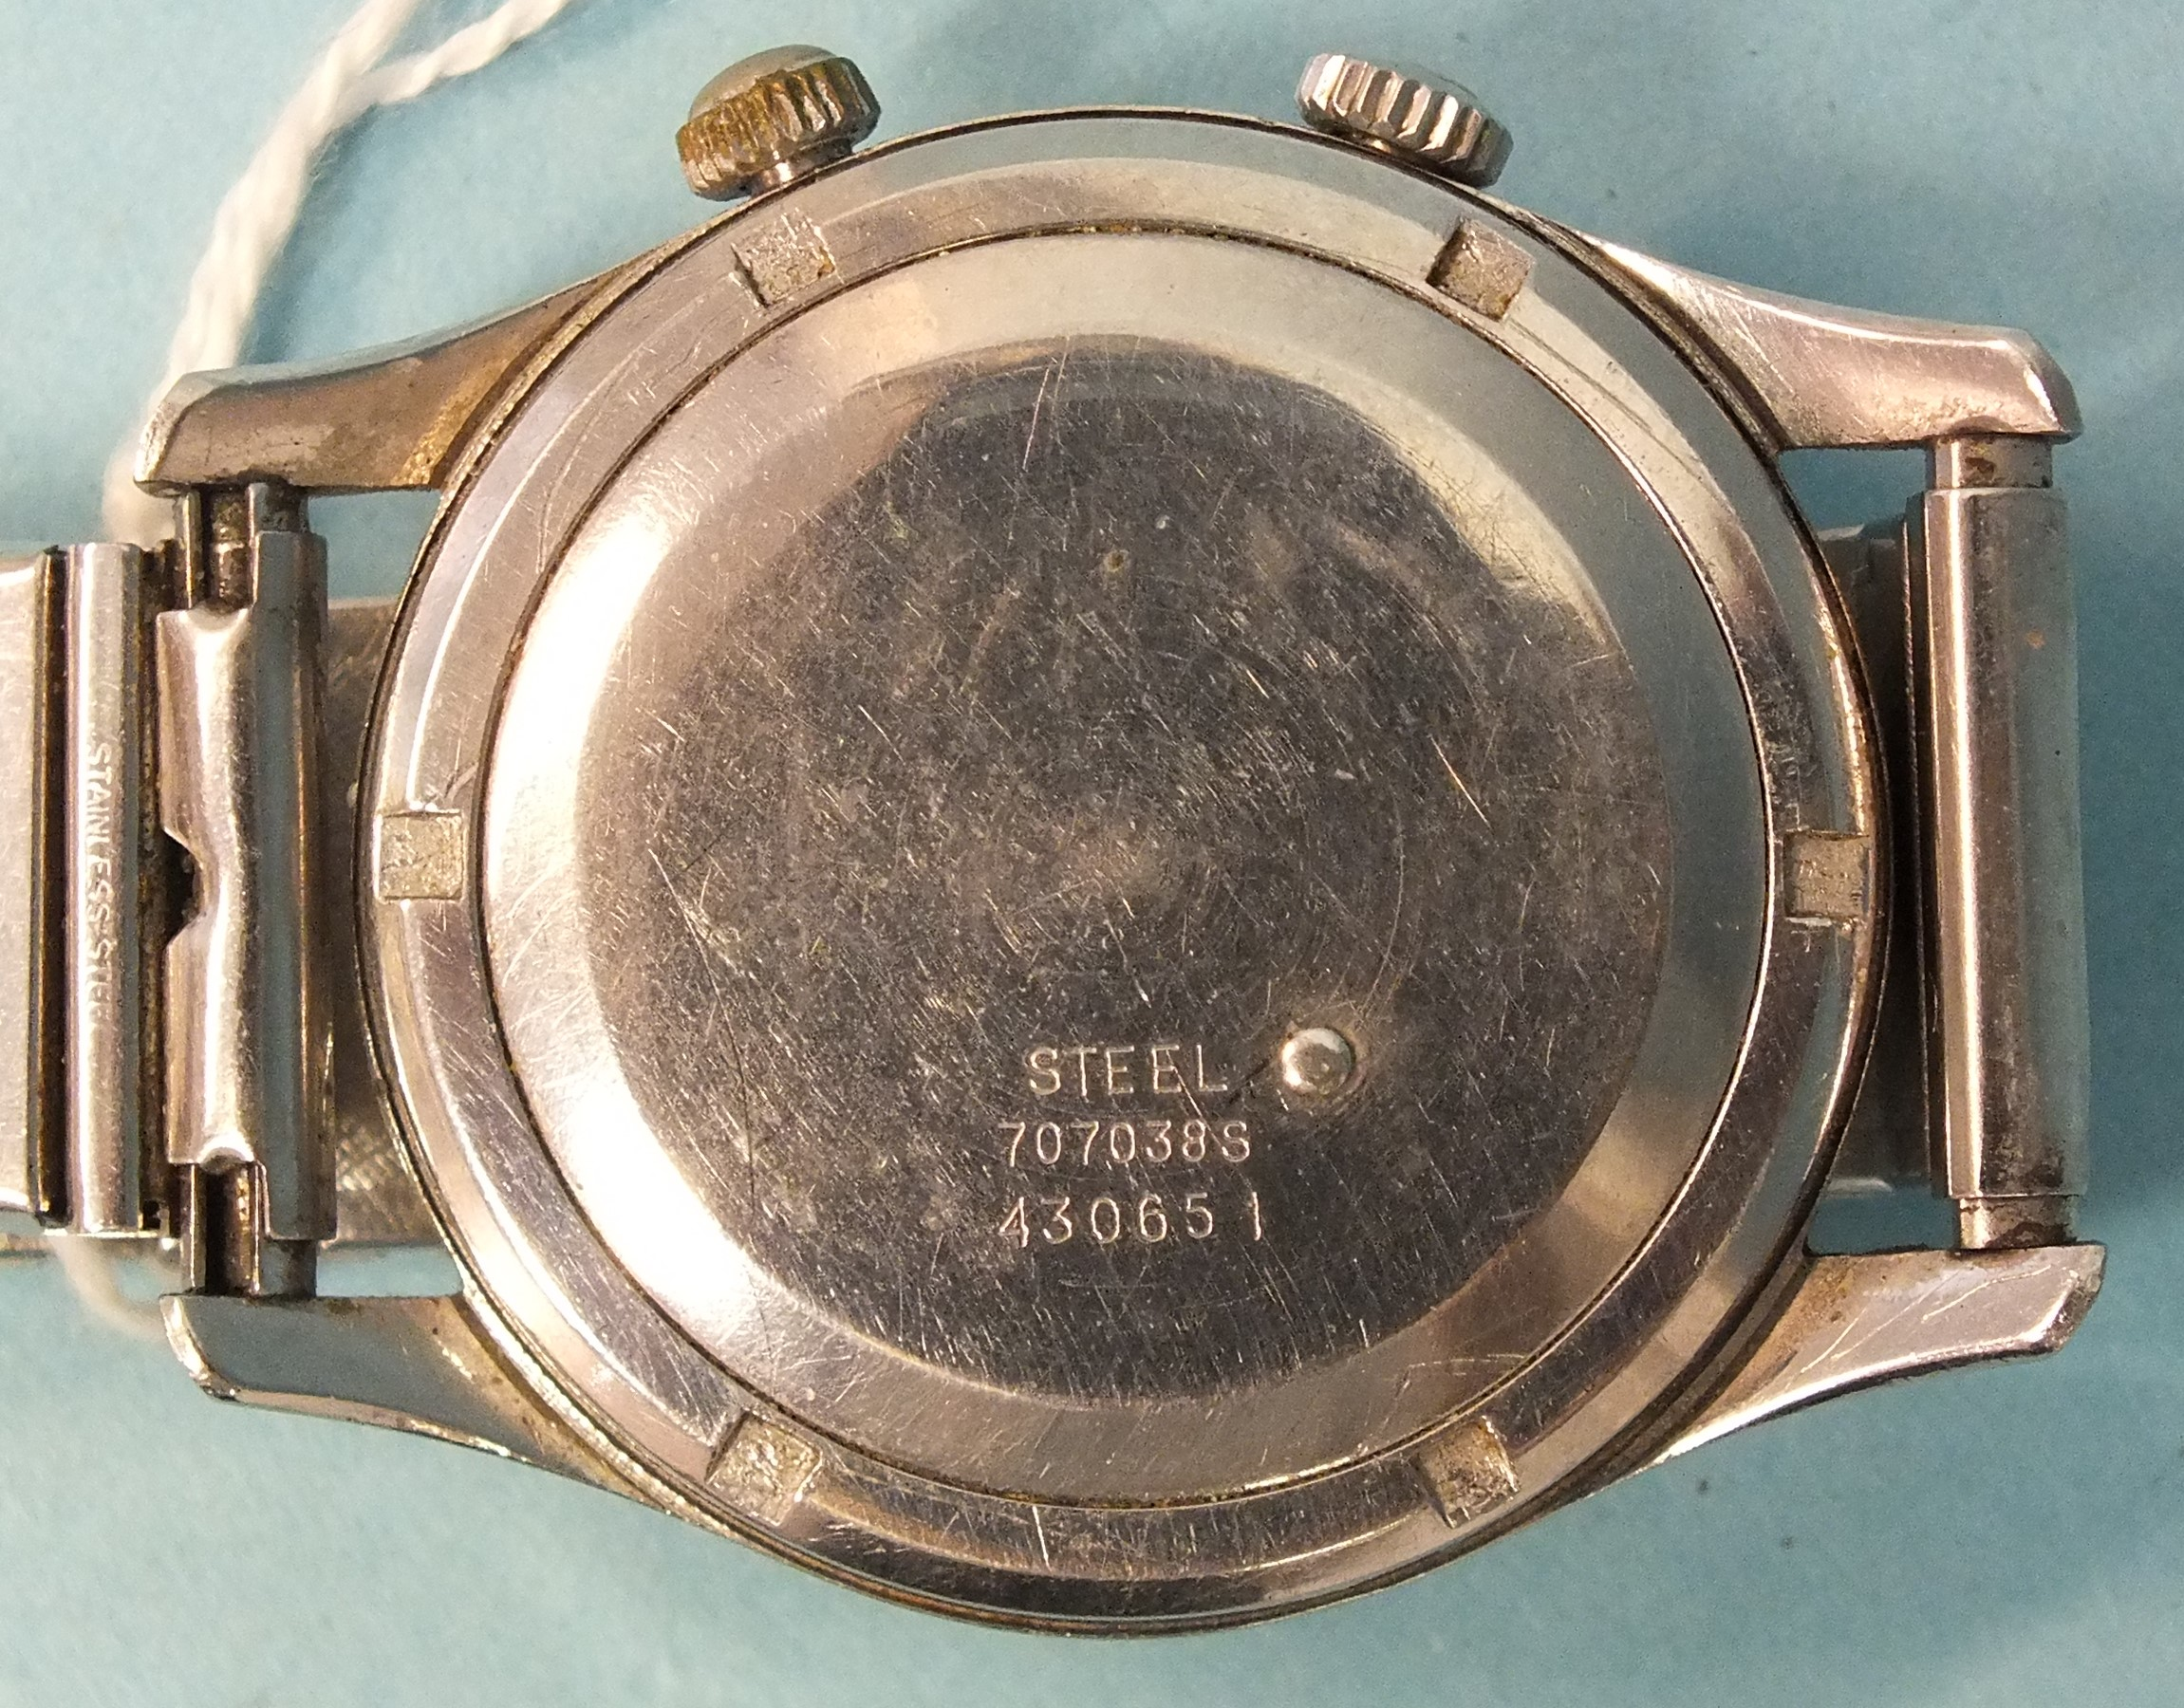 Ernest Borel, a gent's Rendez-vous alarm wrist watch c1960's, the two-tone silvered circular dial - Image 2 of 2